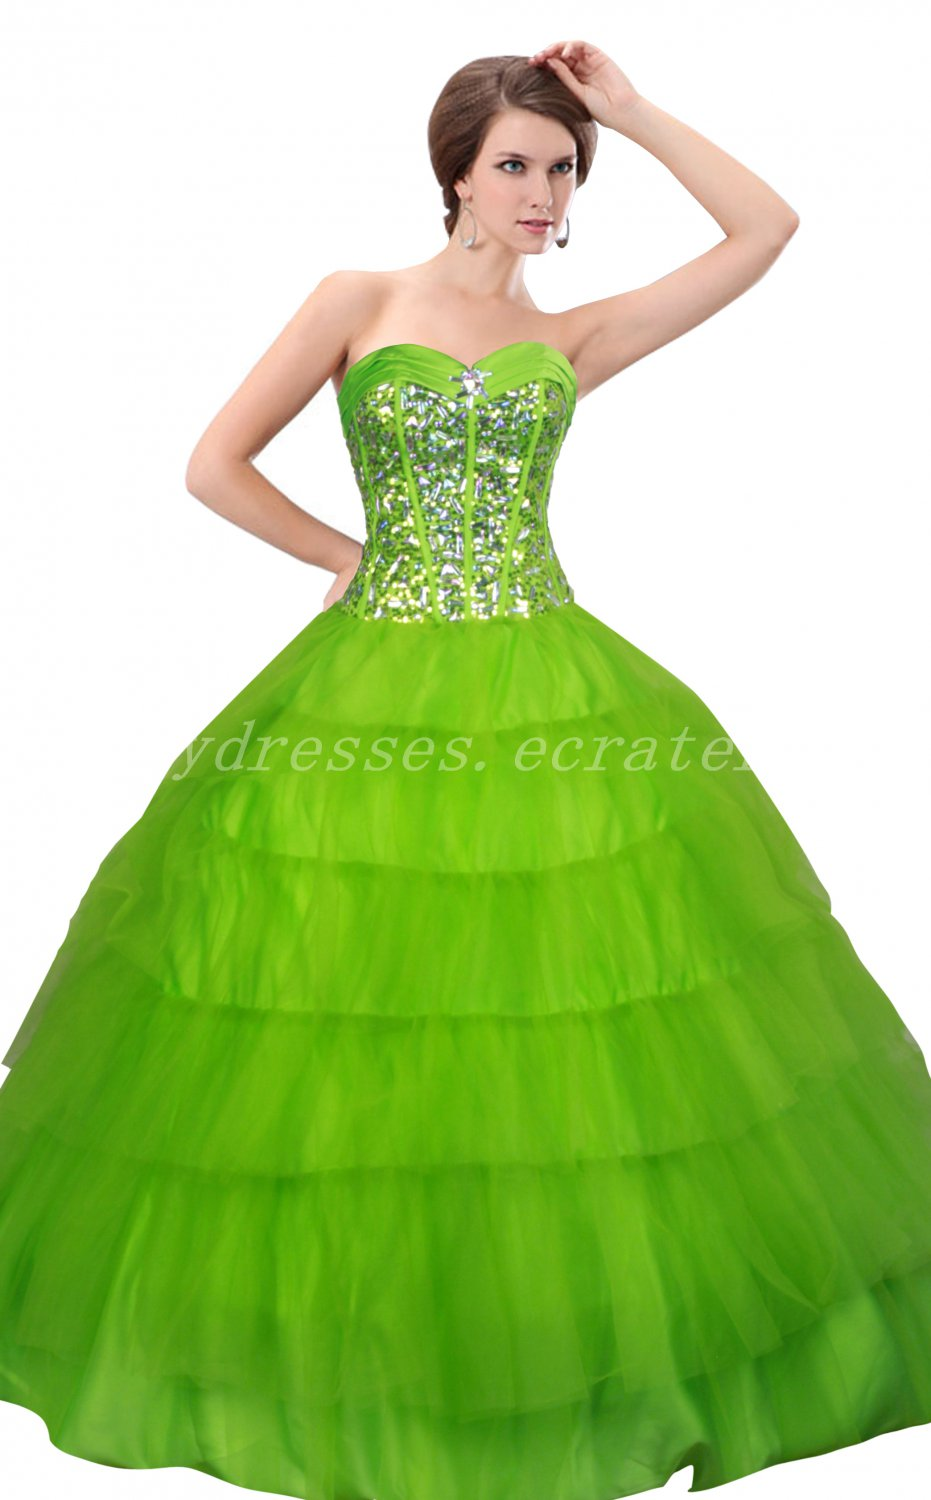 Pretty Ball Gown Emerald Green Quinceanera Dresses With Sequins